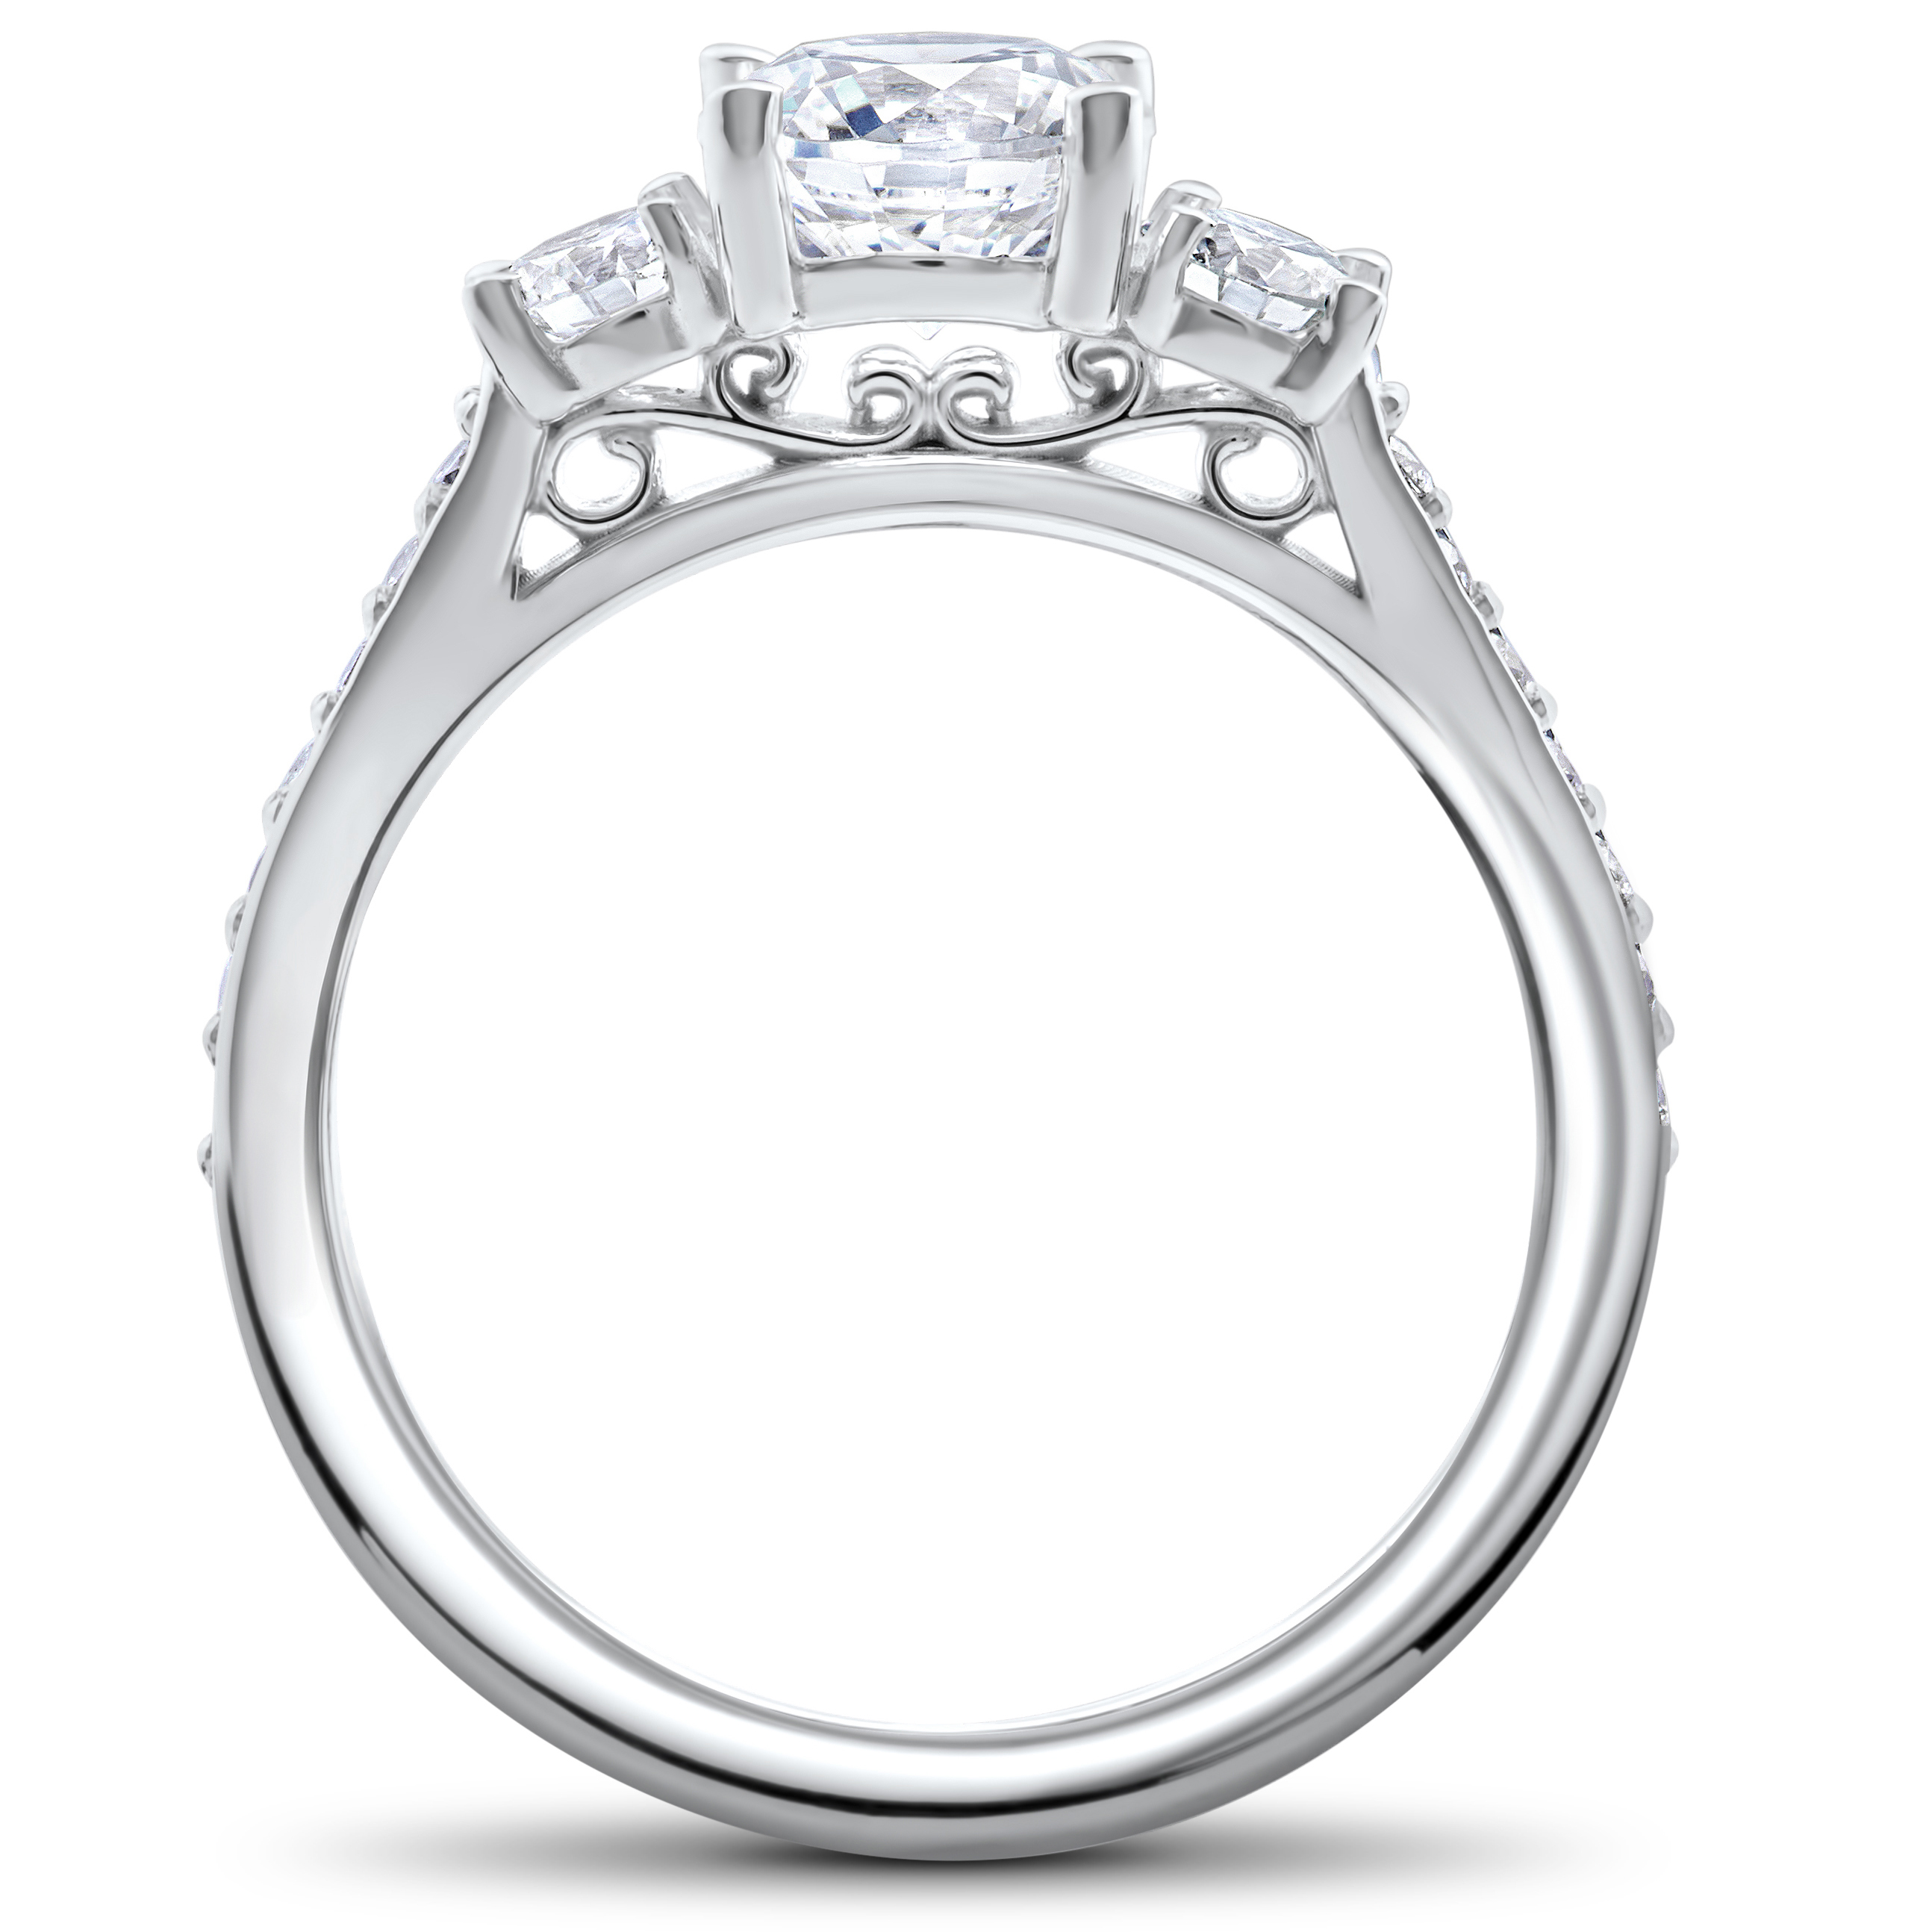 engagement a reset given high jewellery beauty image option seen is and vs settings to i comparison in similar practicality it having though have this think low setting ring the pretty was really topic one of